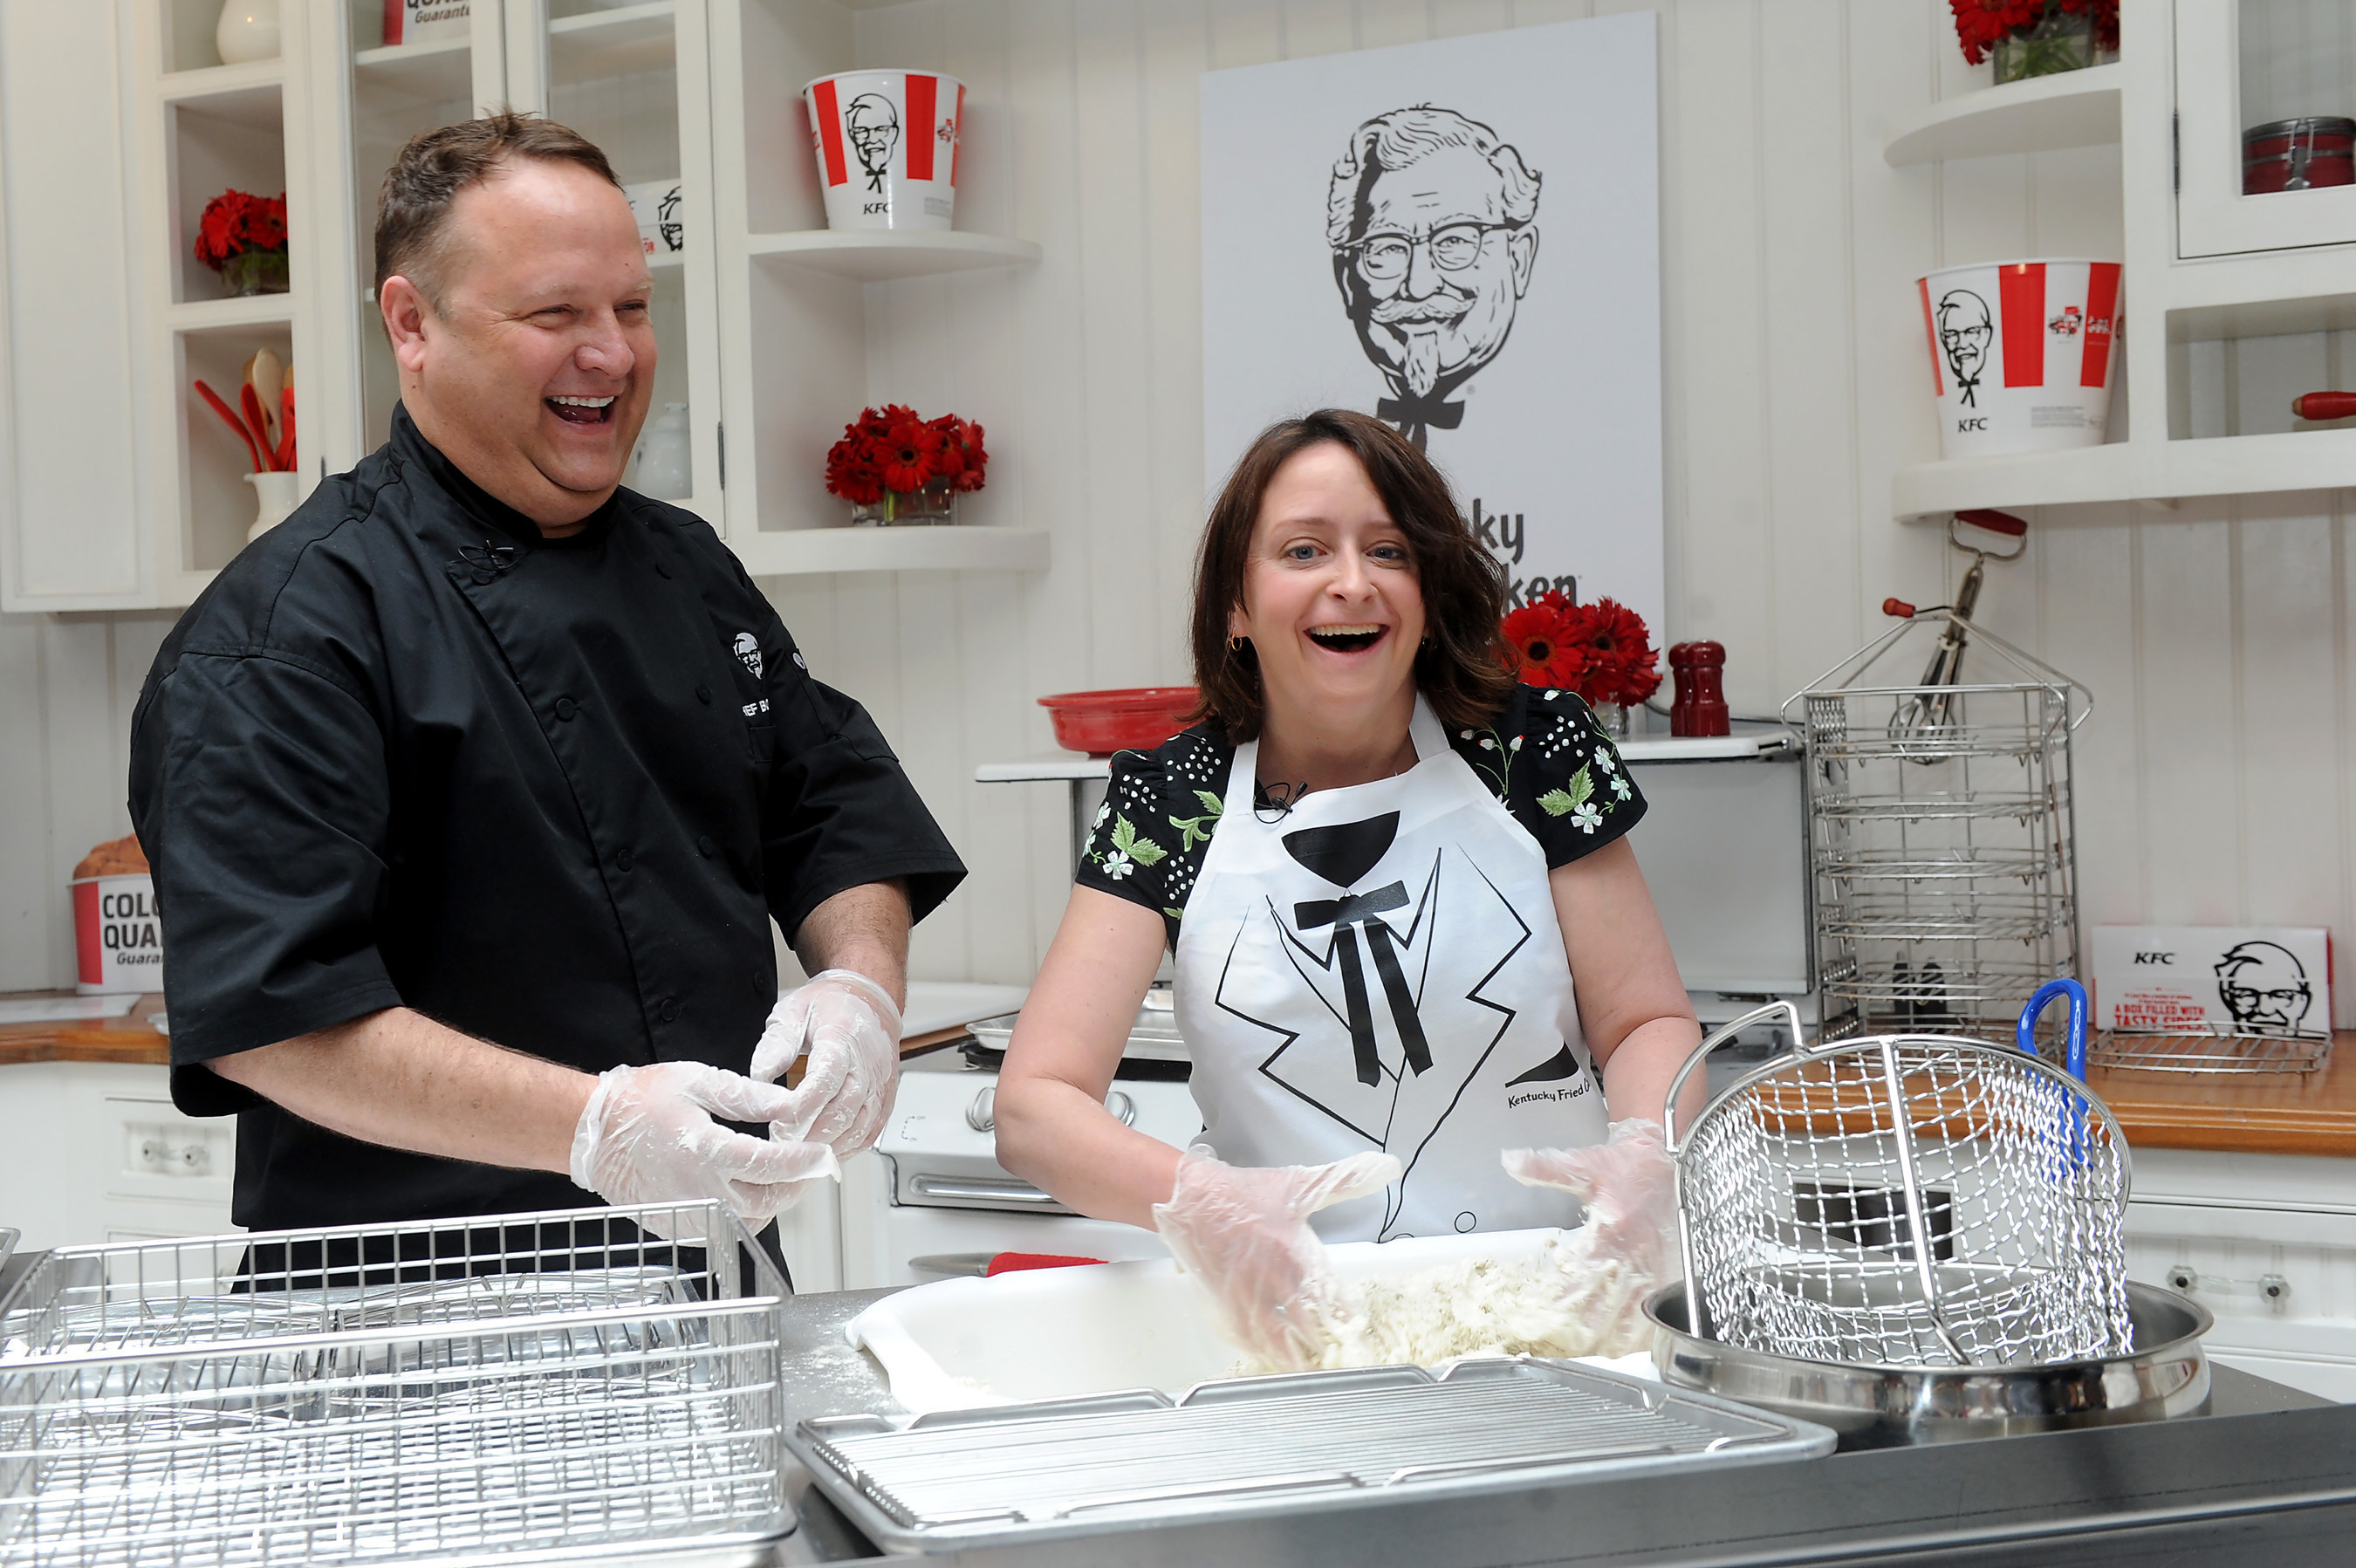 KFC U.S. Head Chef, Bob Das, teaches actress and comedienne, Rachel Dratch, how to make KFC Original Recipe fried chicken at the KFC Re-Colonelization event on Monday, April 4, 2016 in New York City. (Diane Bondareff/AP Images for KFC)